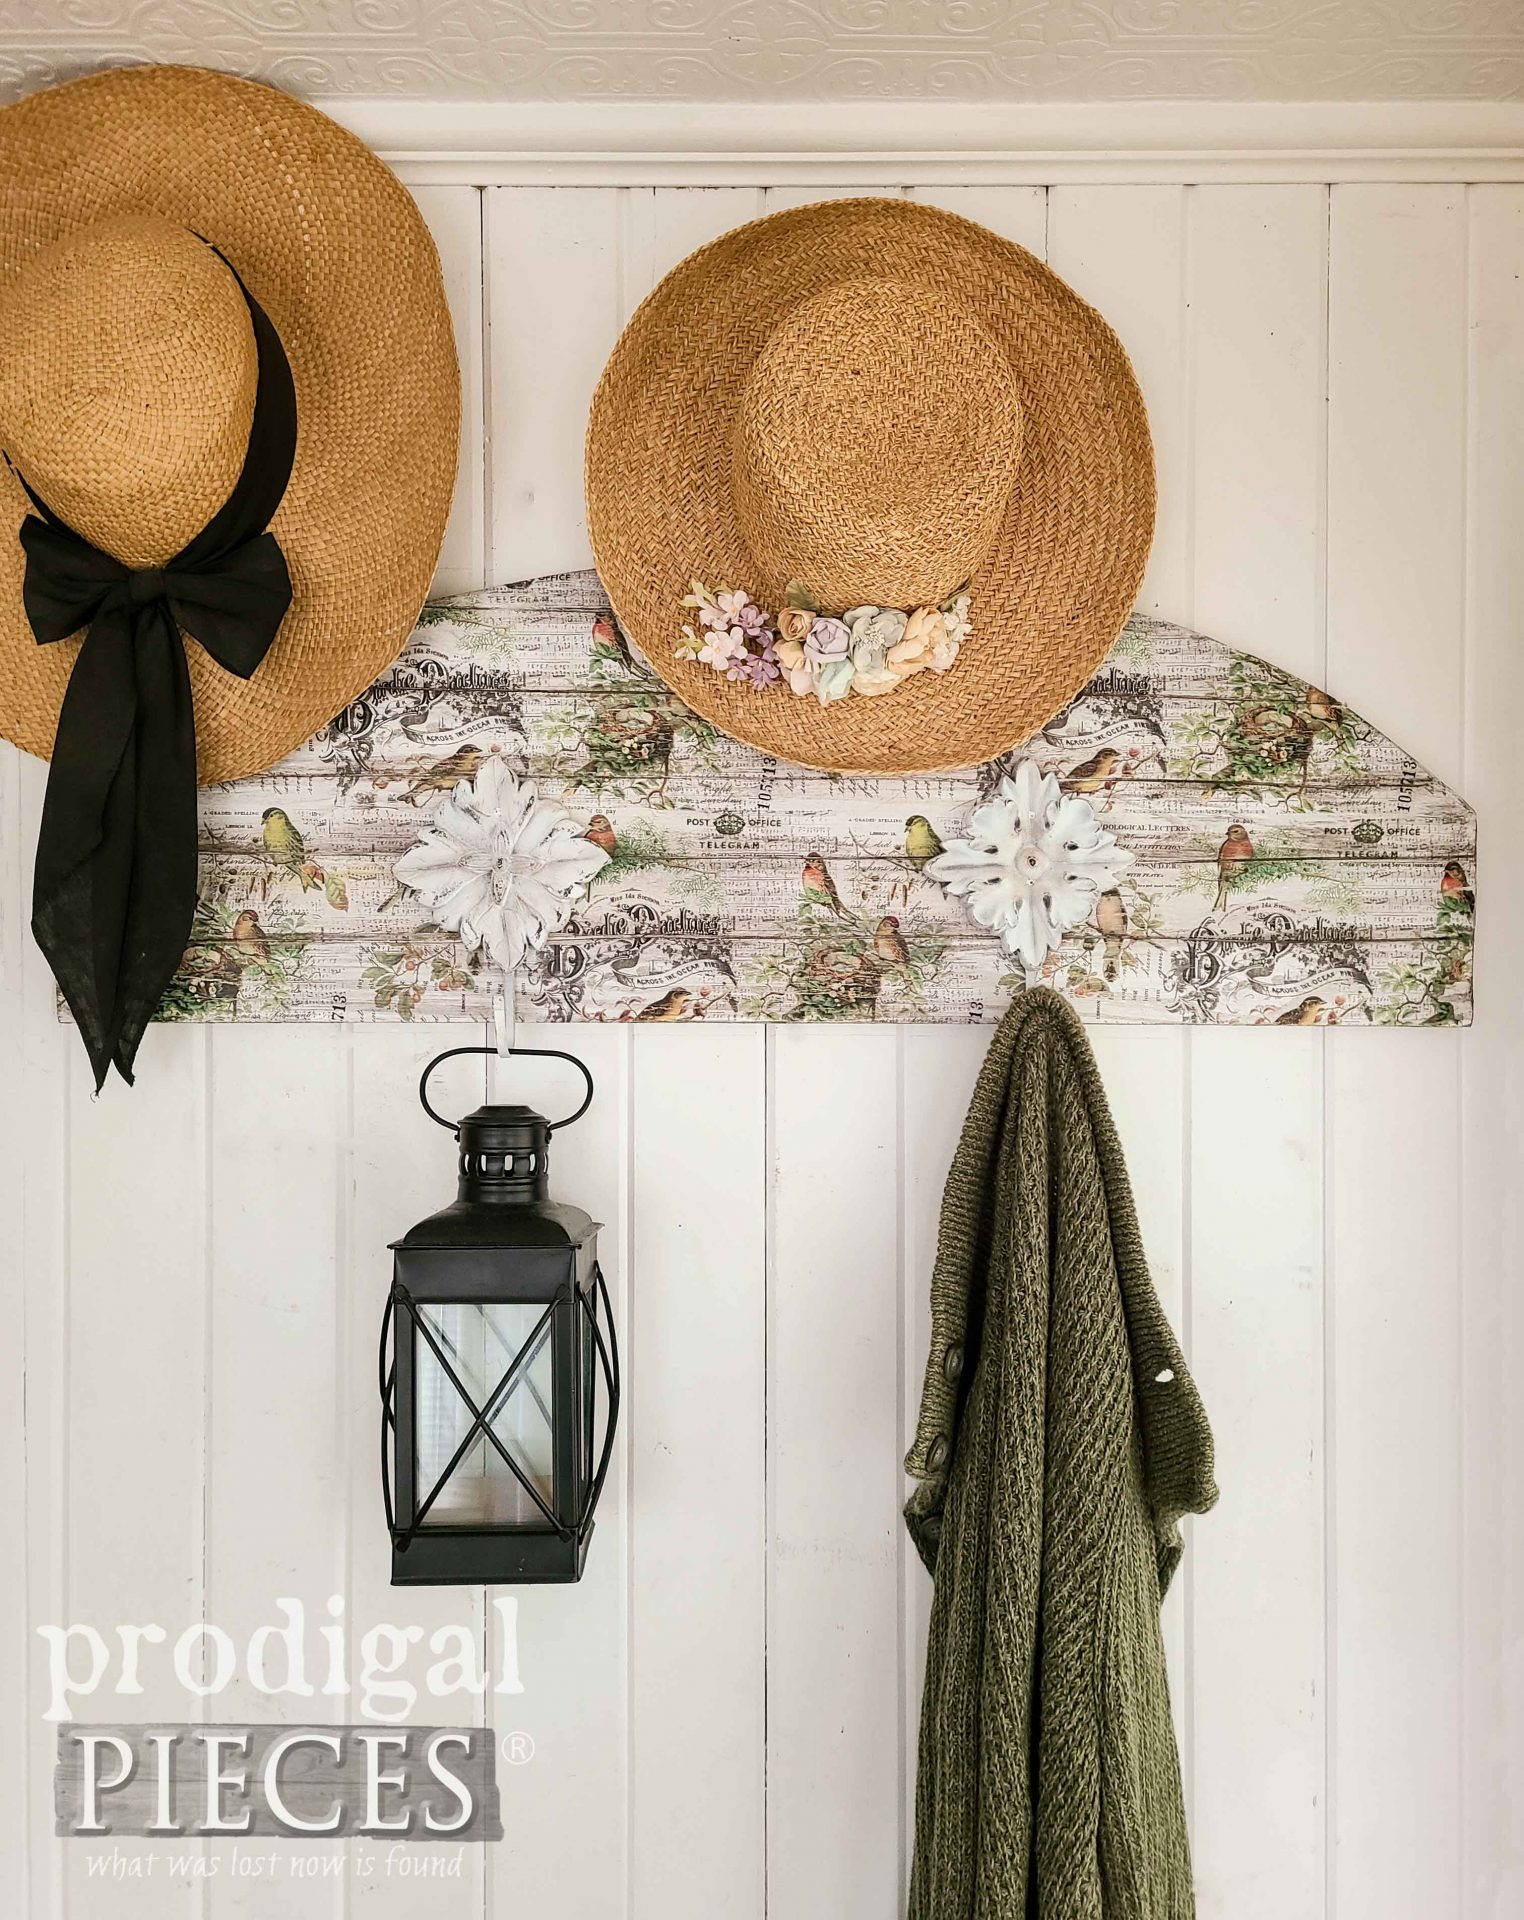 You can make this cottage style coat rack with scraps and thrifted finds | Details at Prodigal Pieces | prodigalpieces.com #prodigalpieces #diy #home #homedecor